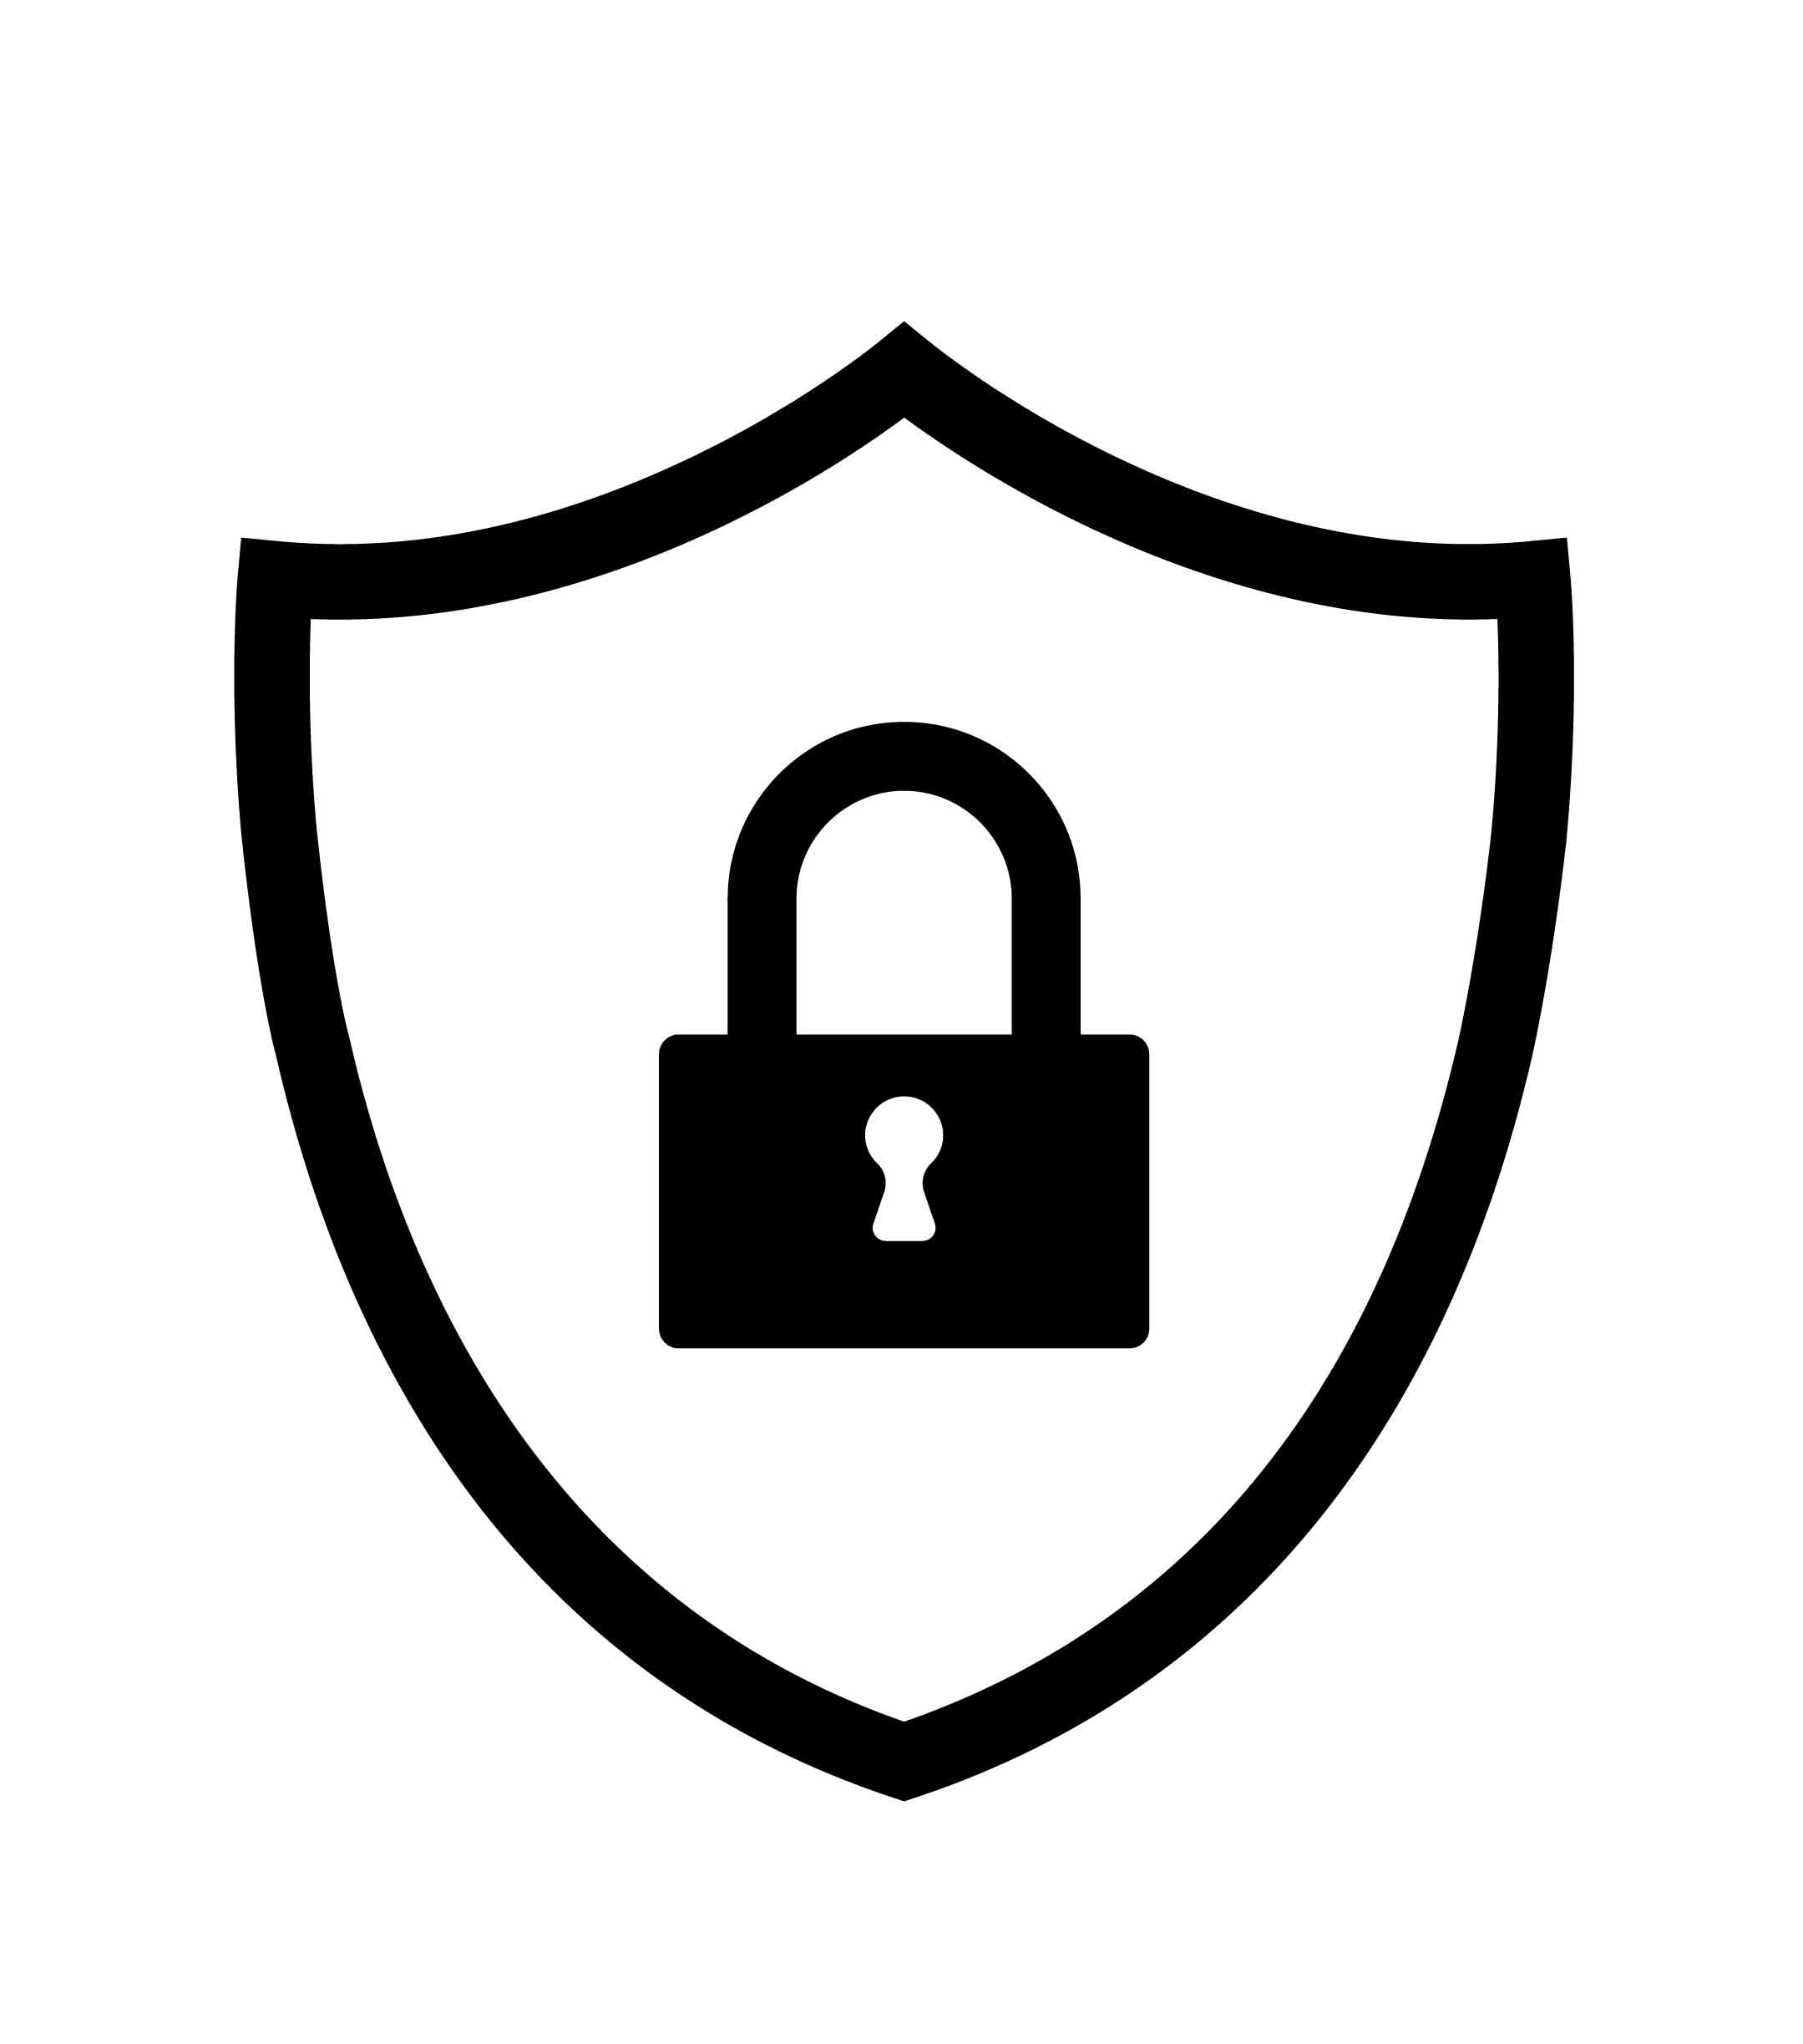 image-Privacy icon.jpg